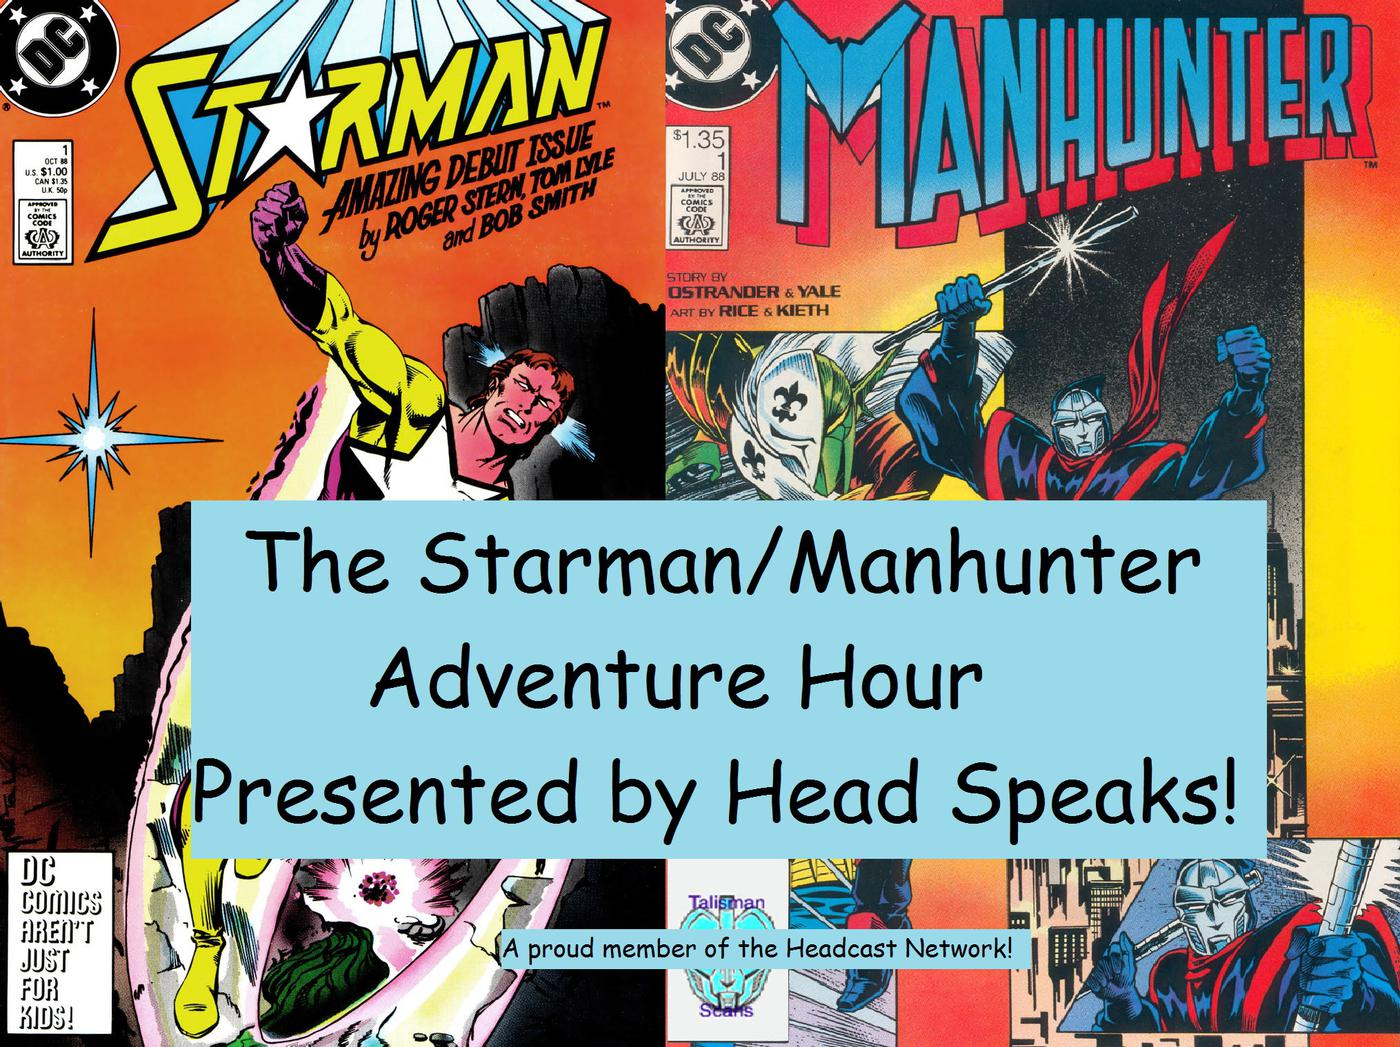 Episode 16: May 1989 - The Starman/Manhunter Adventure Hour